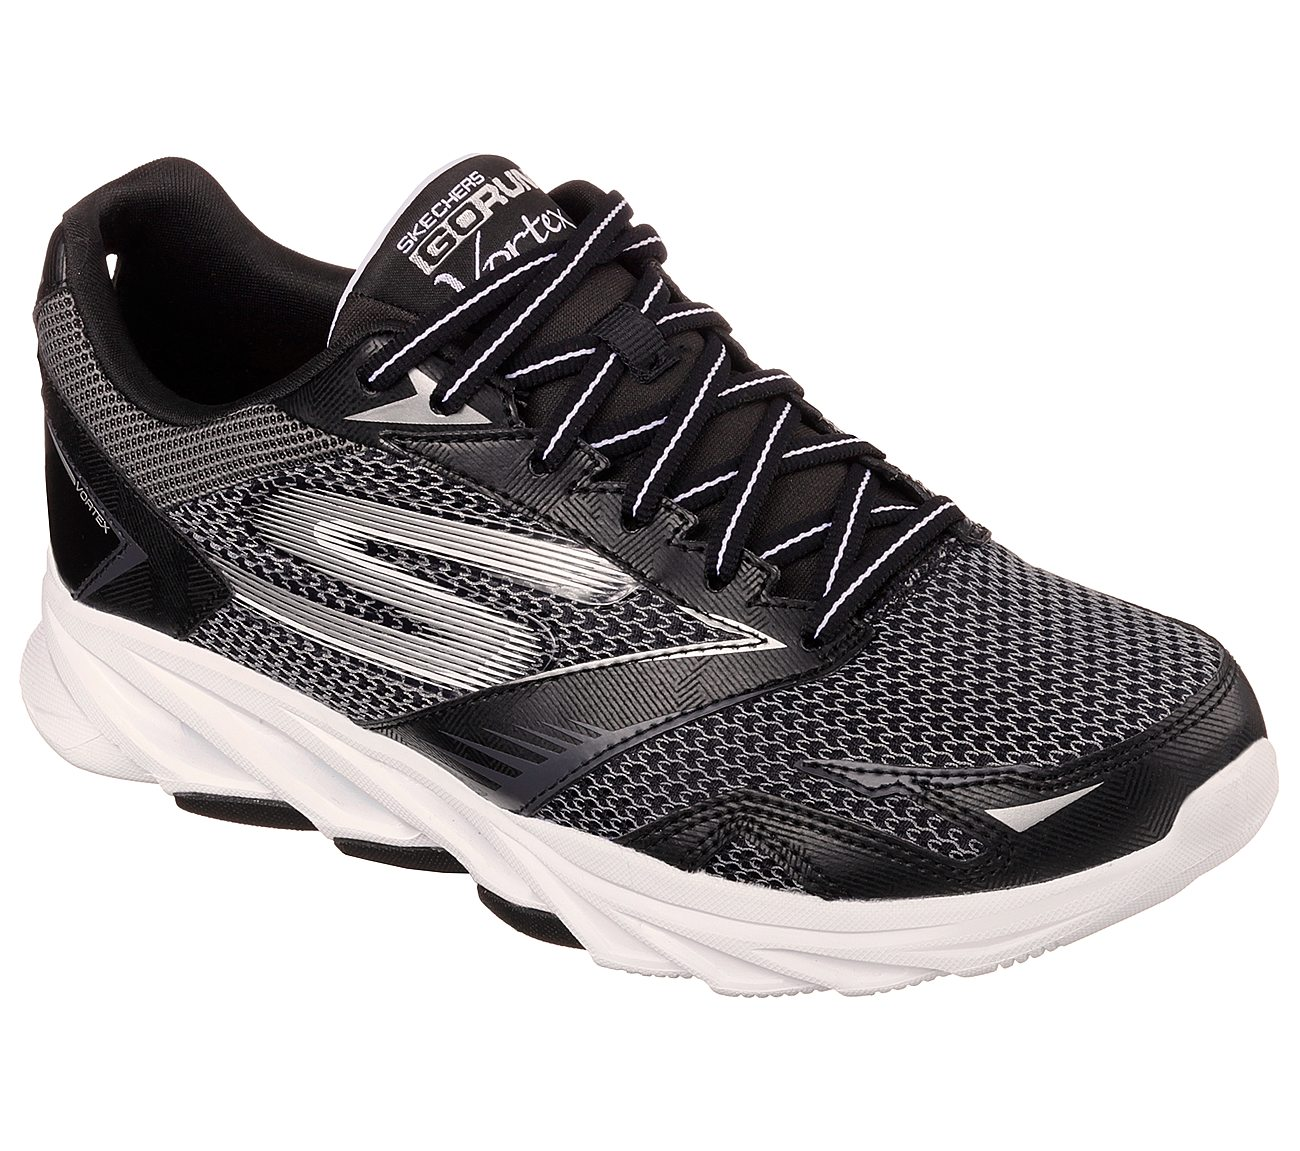 5d923e4c09e8 Buy SKECHERS Skechers GOrun Vortex Skechers Performance Shoes only ...